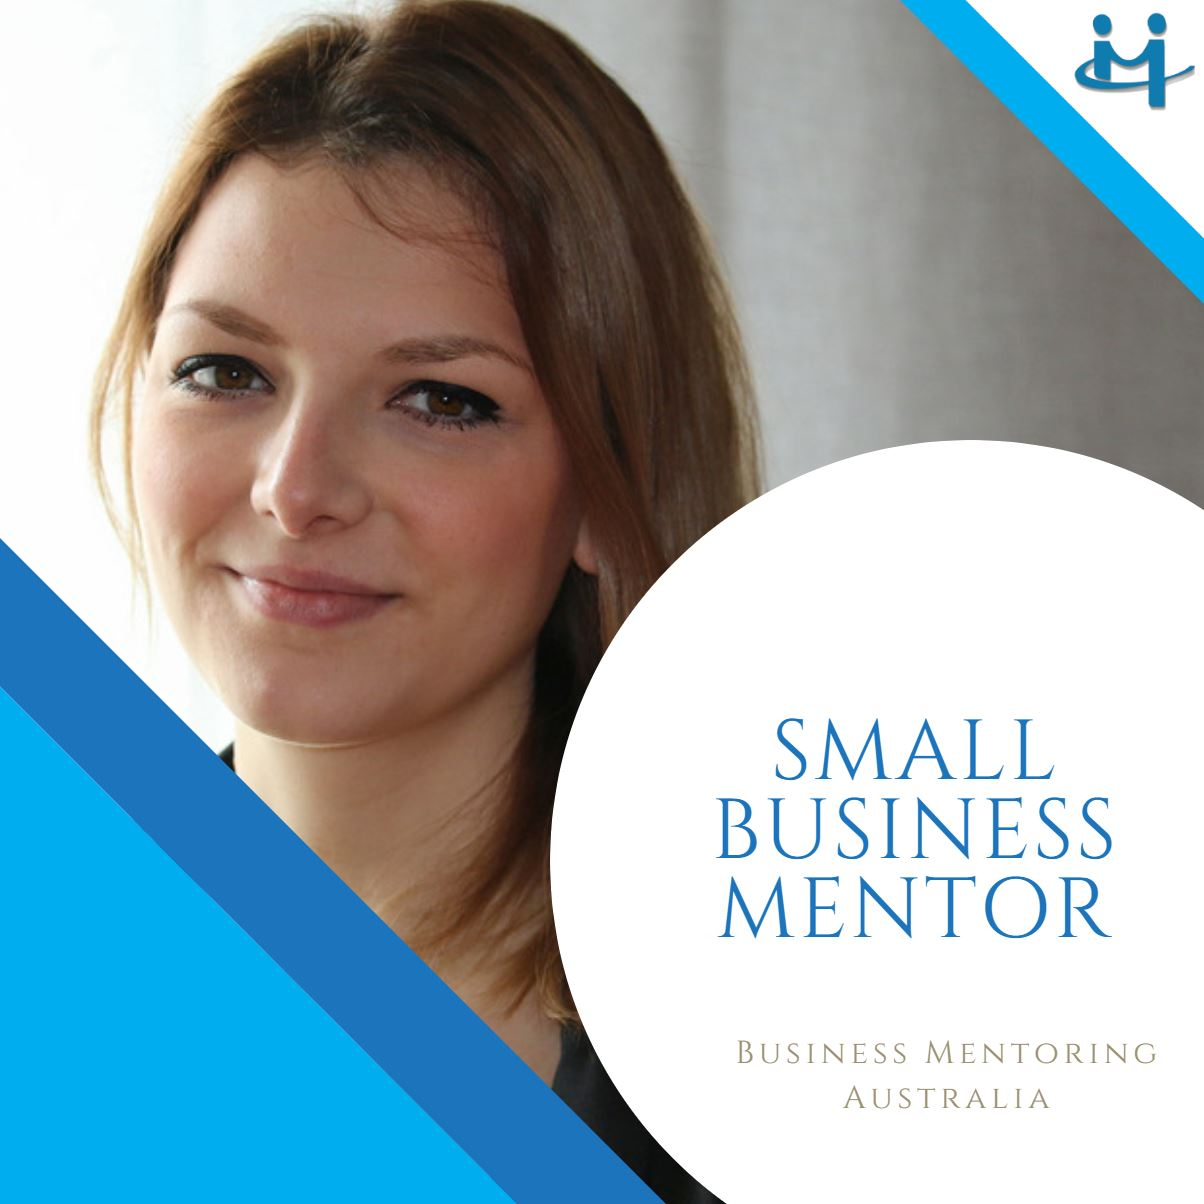 Small business mentors